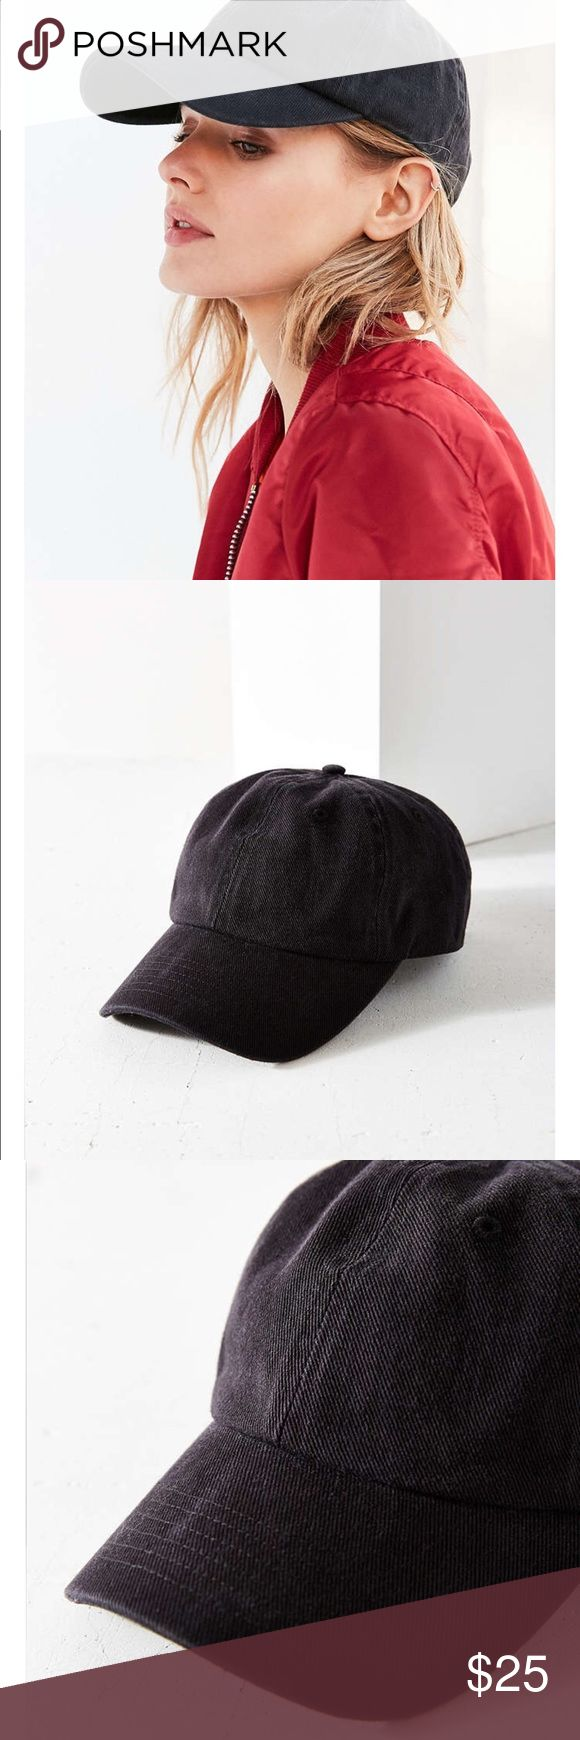 Black washed baseball hat Brand new in package!!!  Black wash cotton baseball cap.  Like and I'll tag you when they are in!!  Coming soon!!! Urban Outfitters Accessories Hats